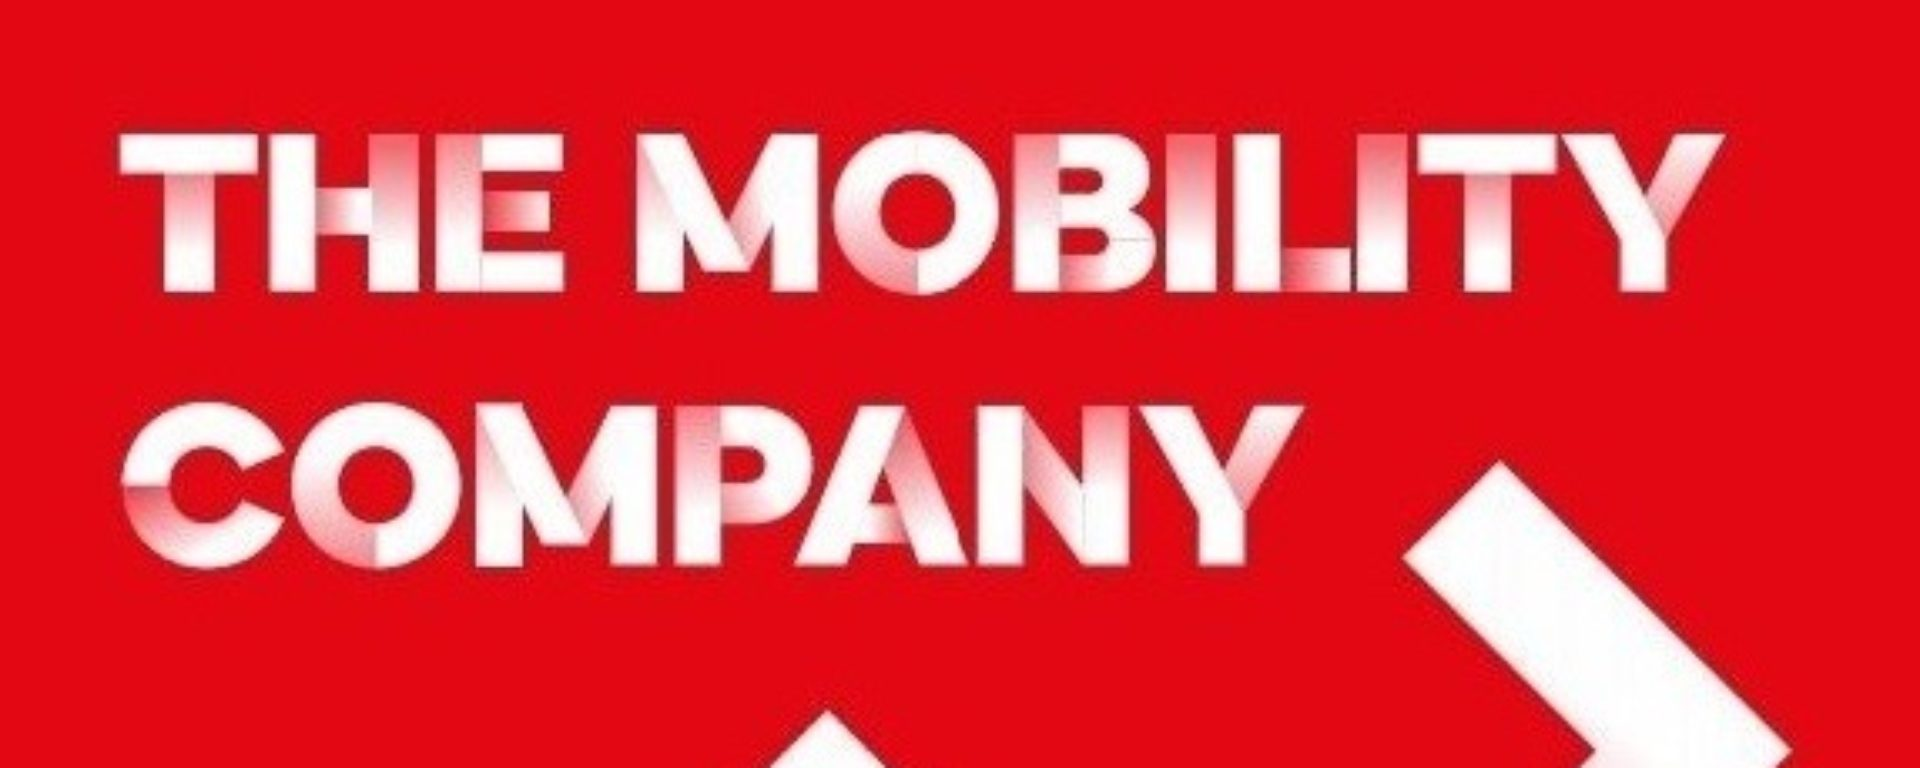 Transdev-Group-The-mobility-company